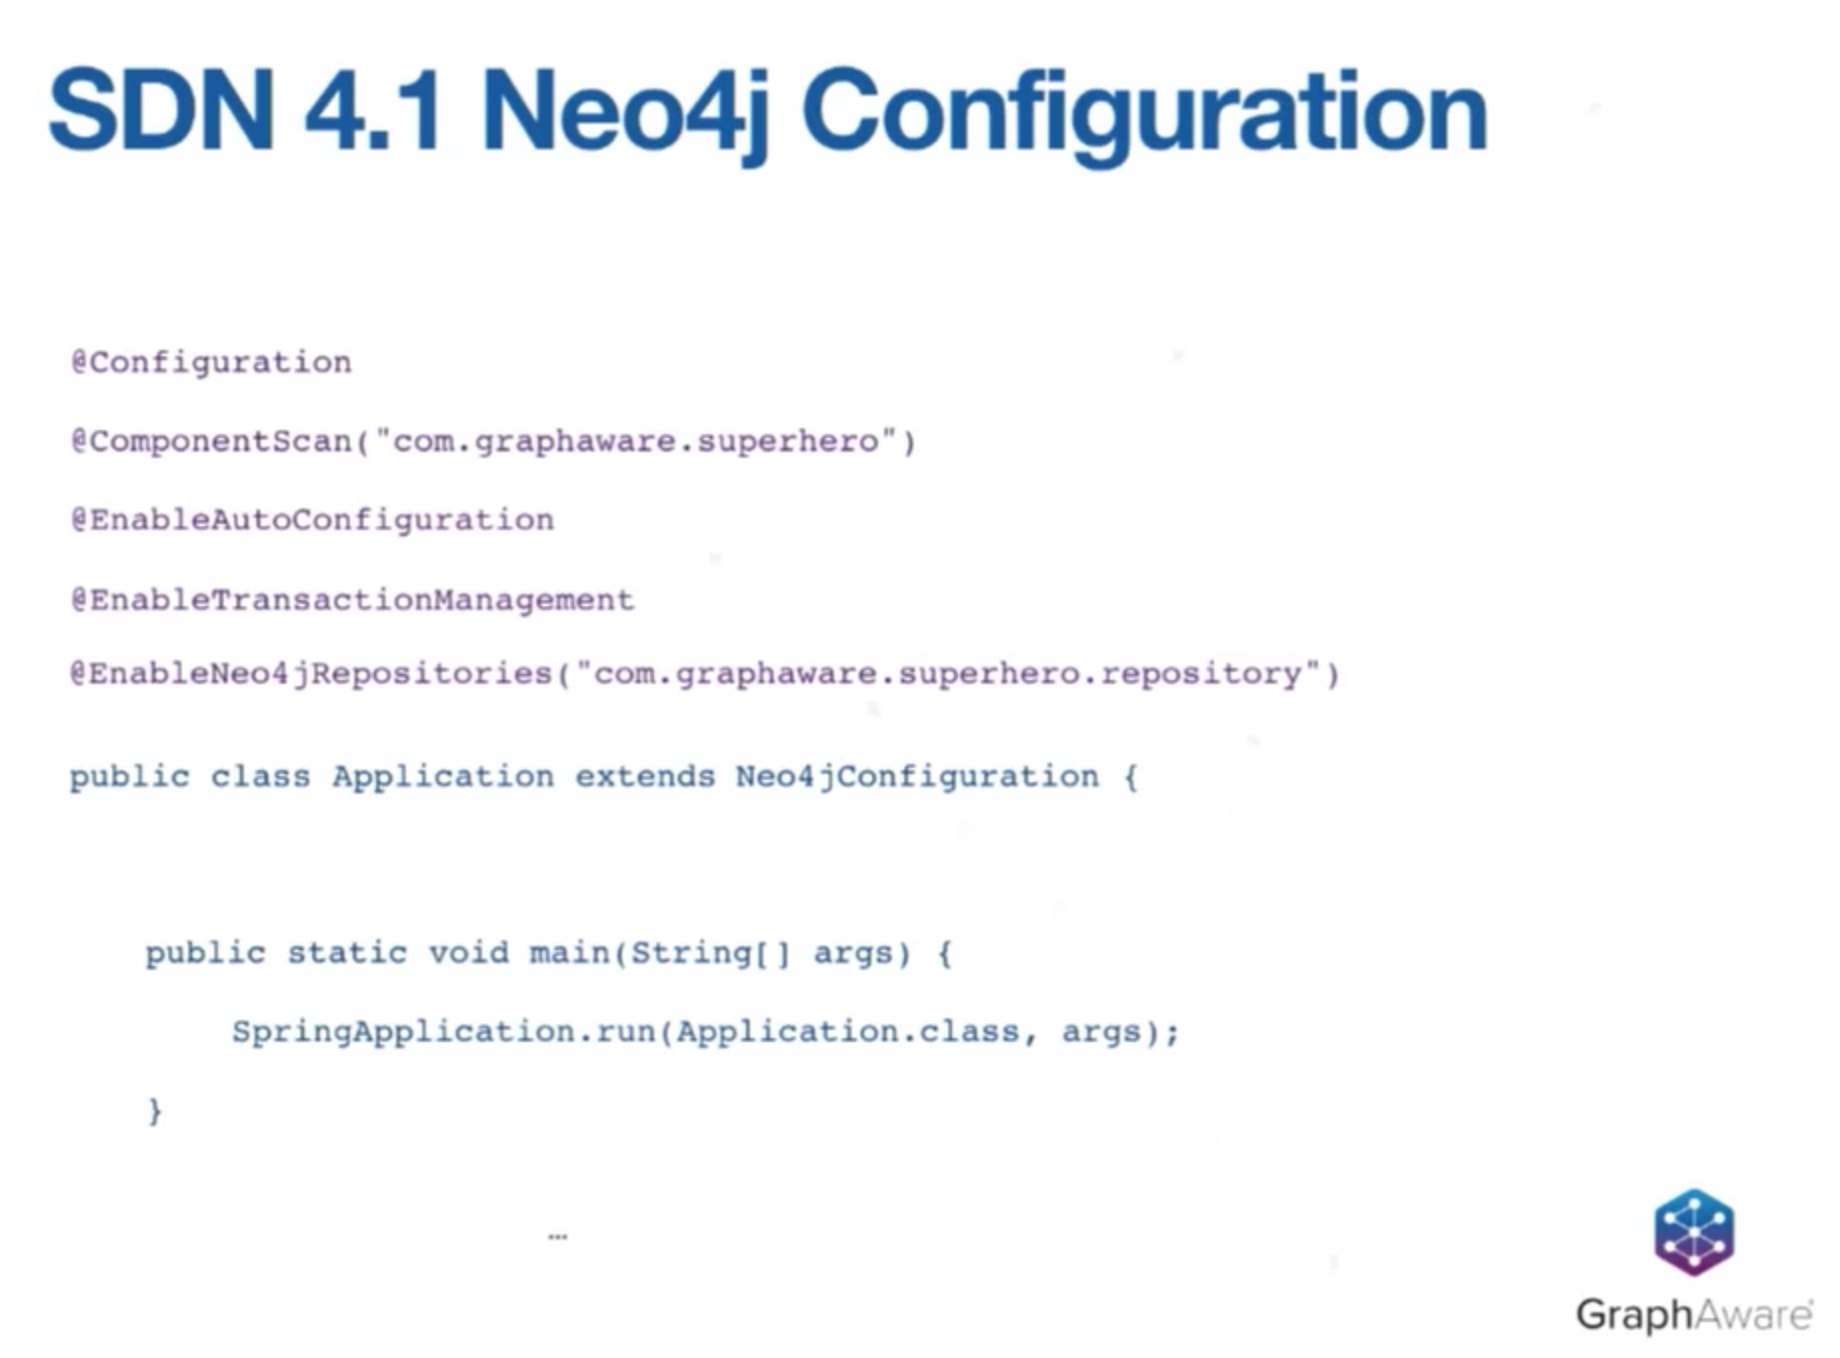 The Spring Data Neo4j Configuration with Neo4j